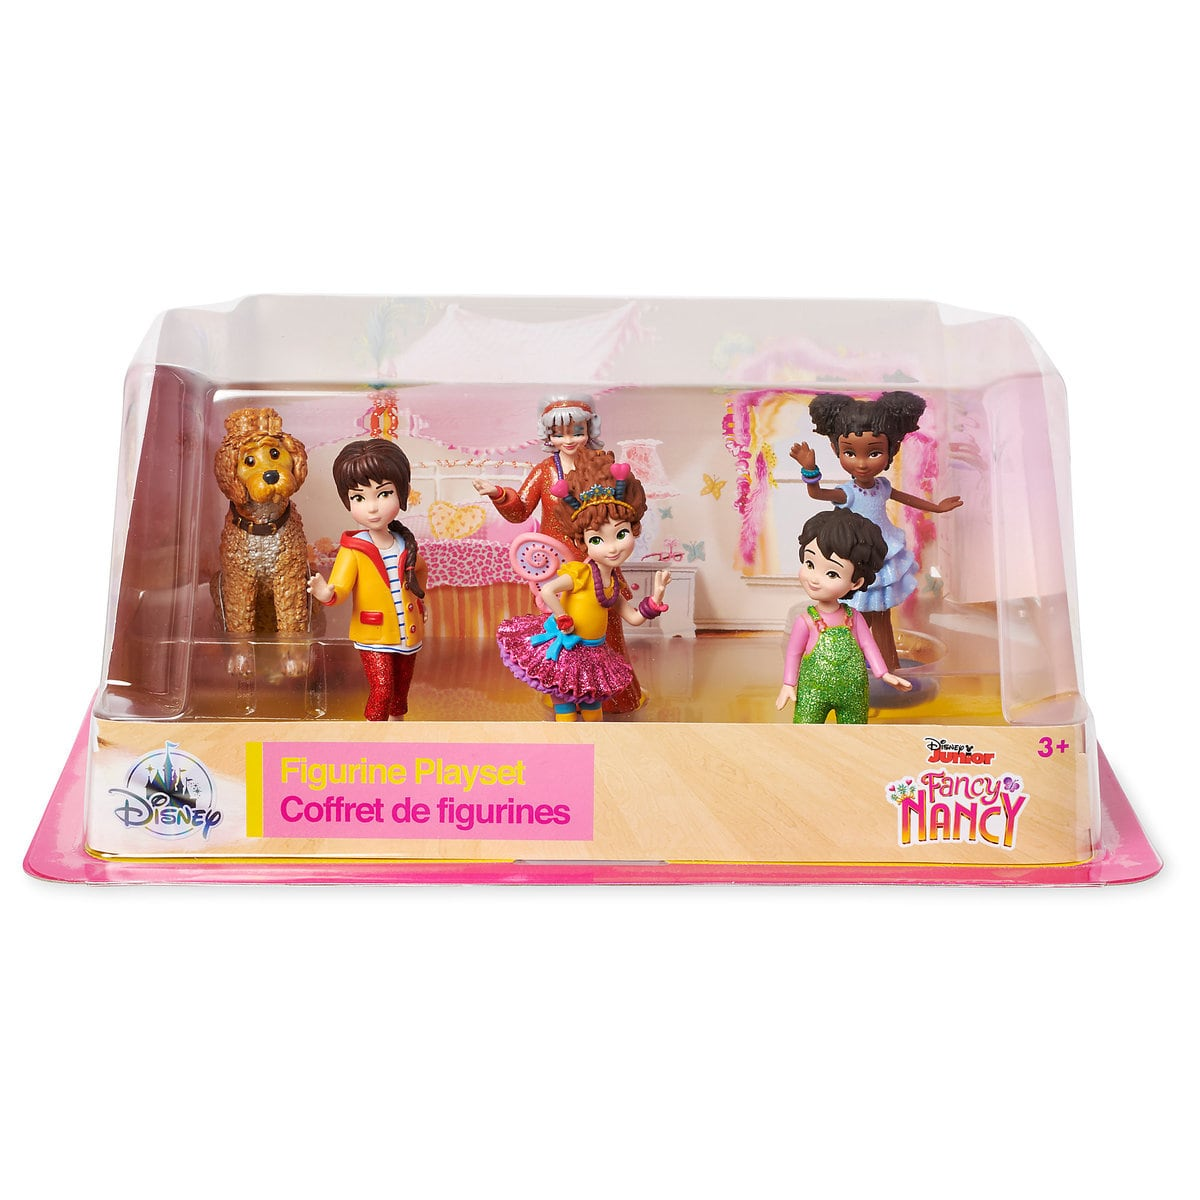 Details about Disney Fancy Nancy Figure Play Set Genuine Disne